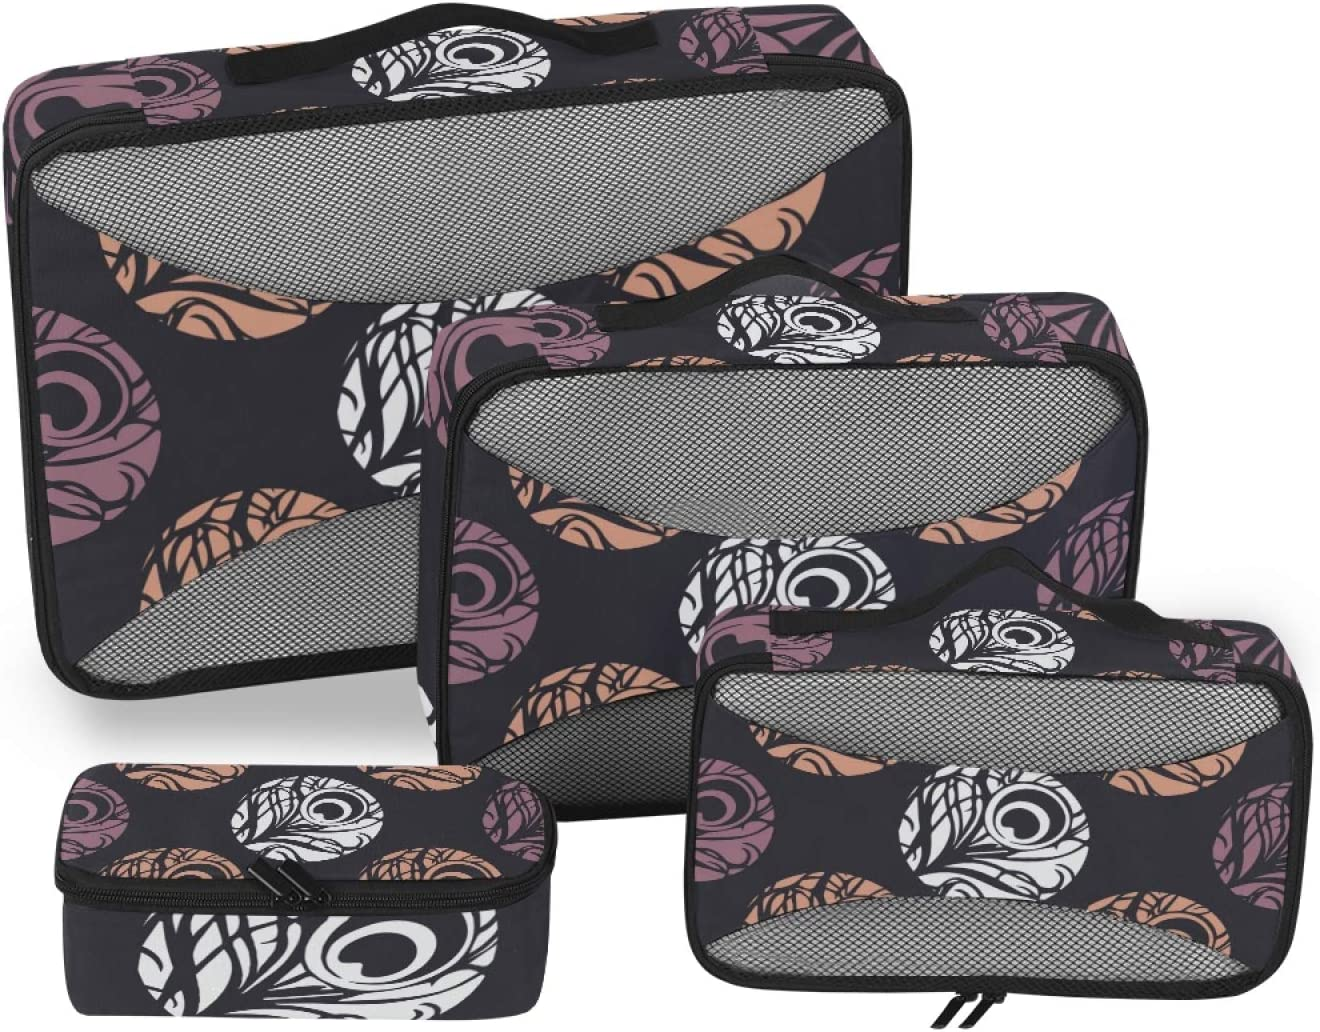 Feathers Dot Packing Cubes 4-Pcs High quality new Travel Ranking TOP19 Accessories St Organizer